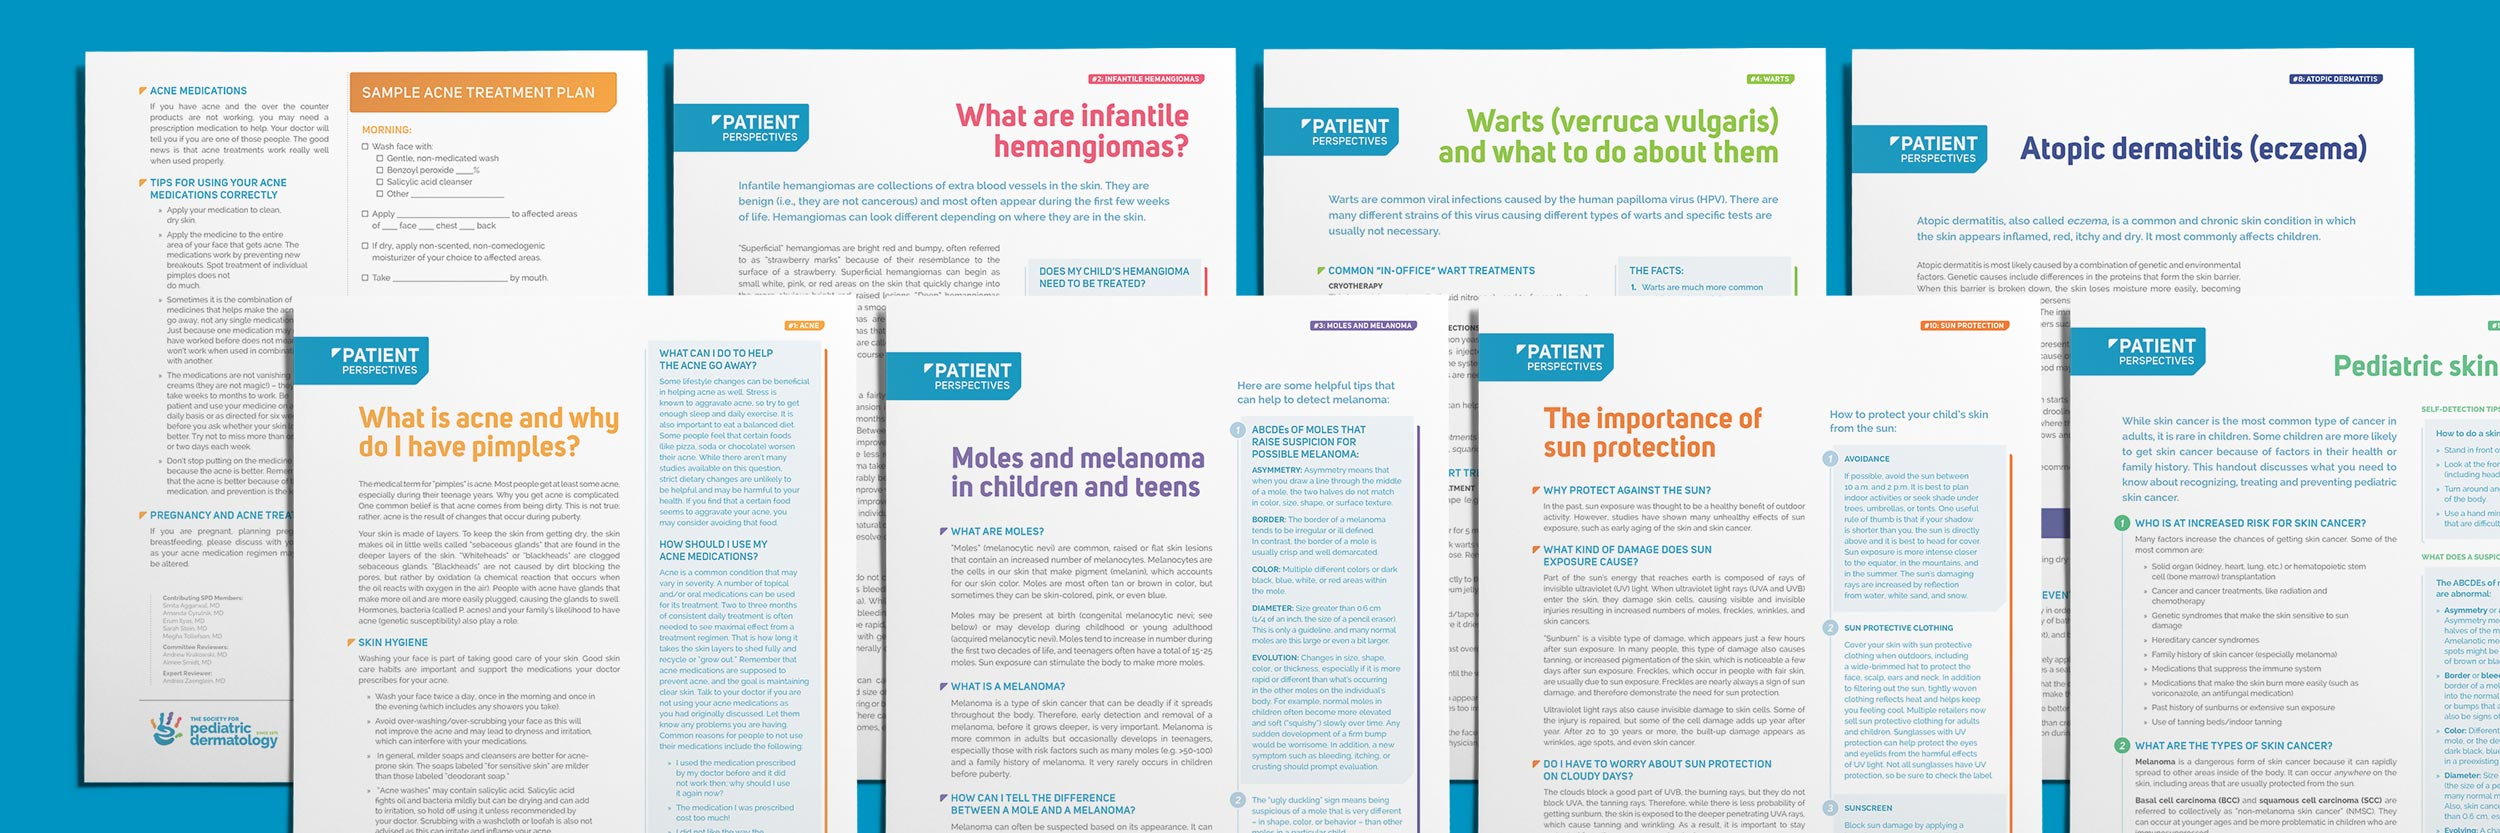 SPD Patient handouts appearing regularly in the journal, Pediatric Dermatology .Image copyright Jeff Miller, HellothisisJeff Design LLC